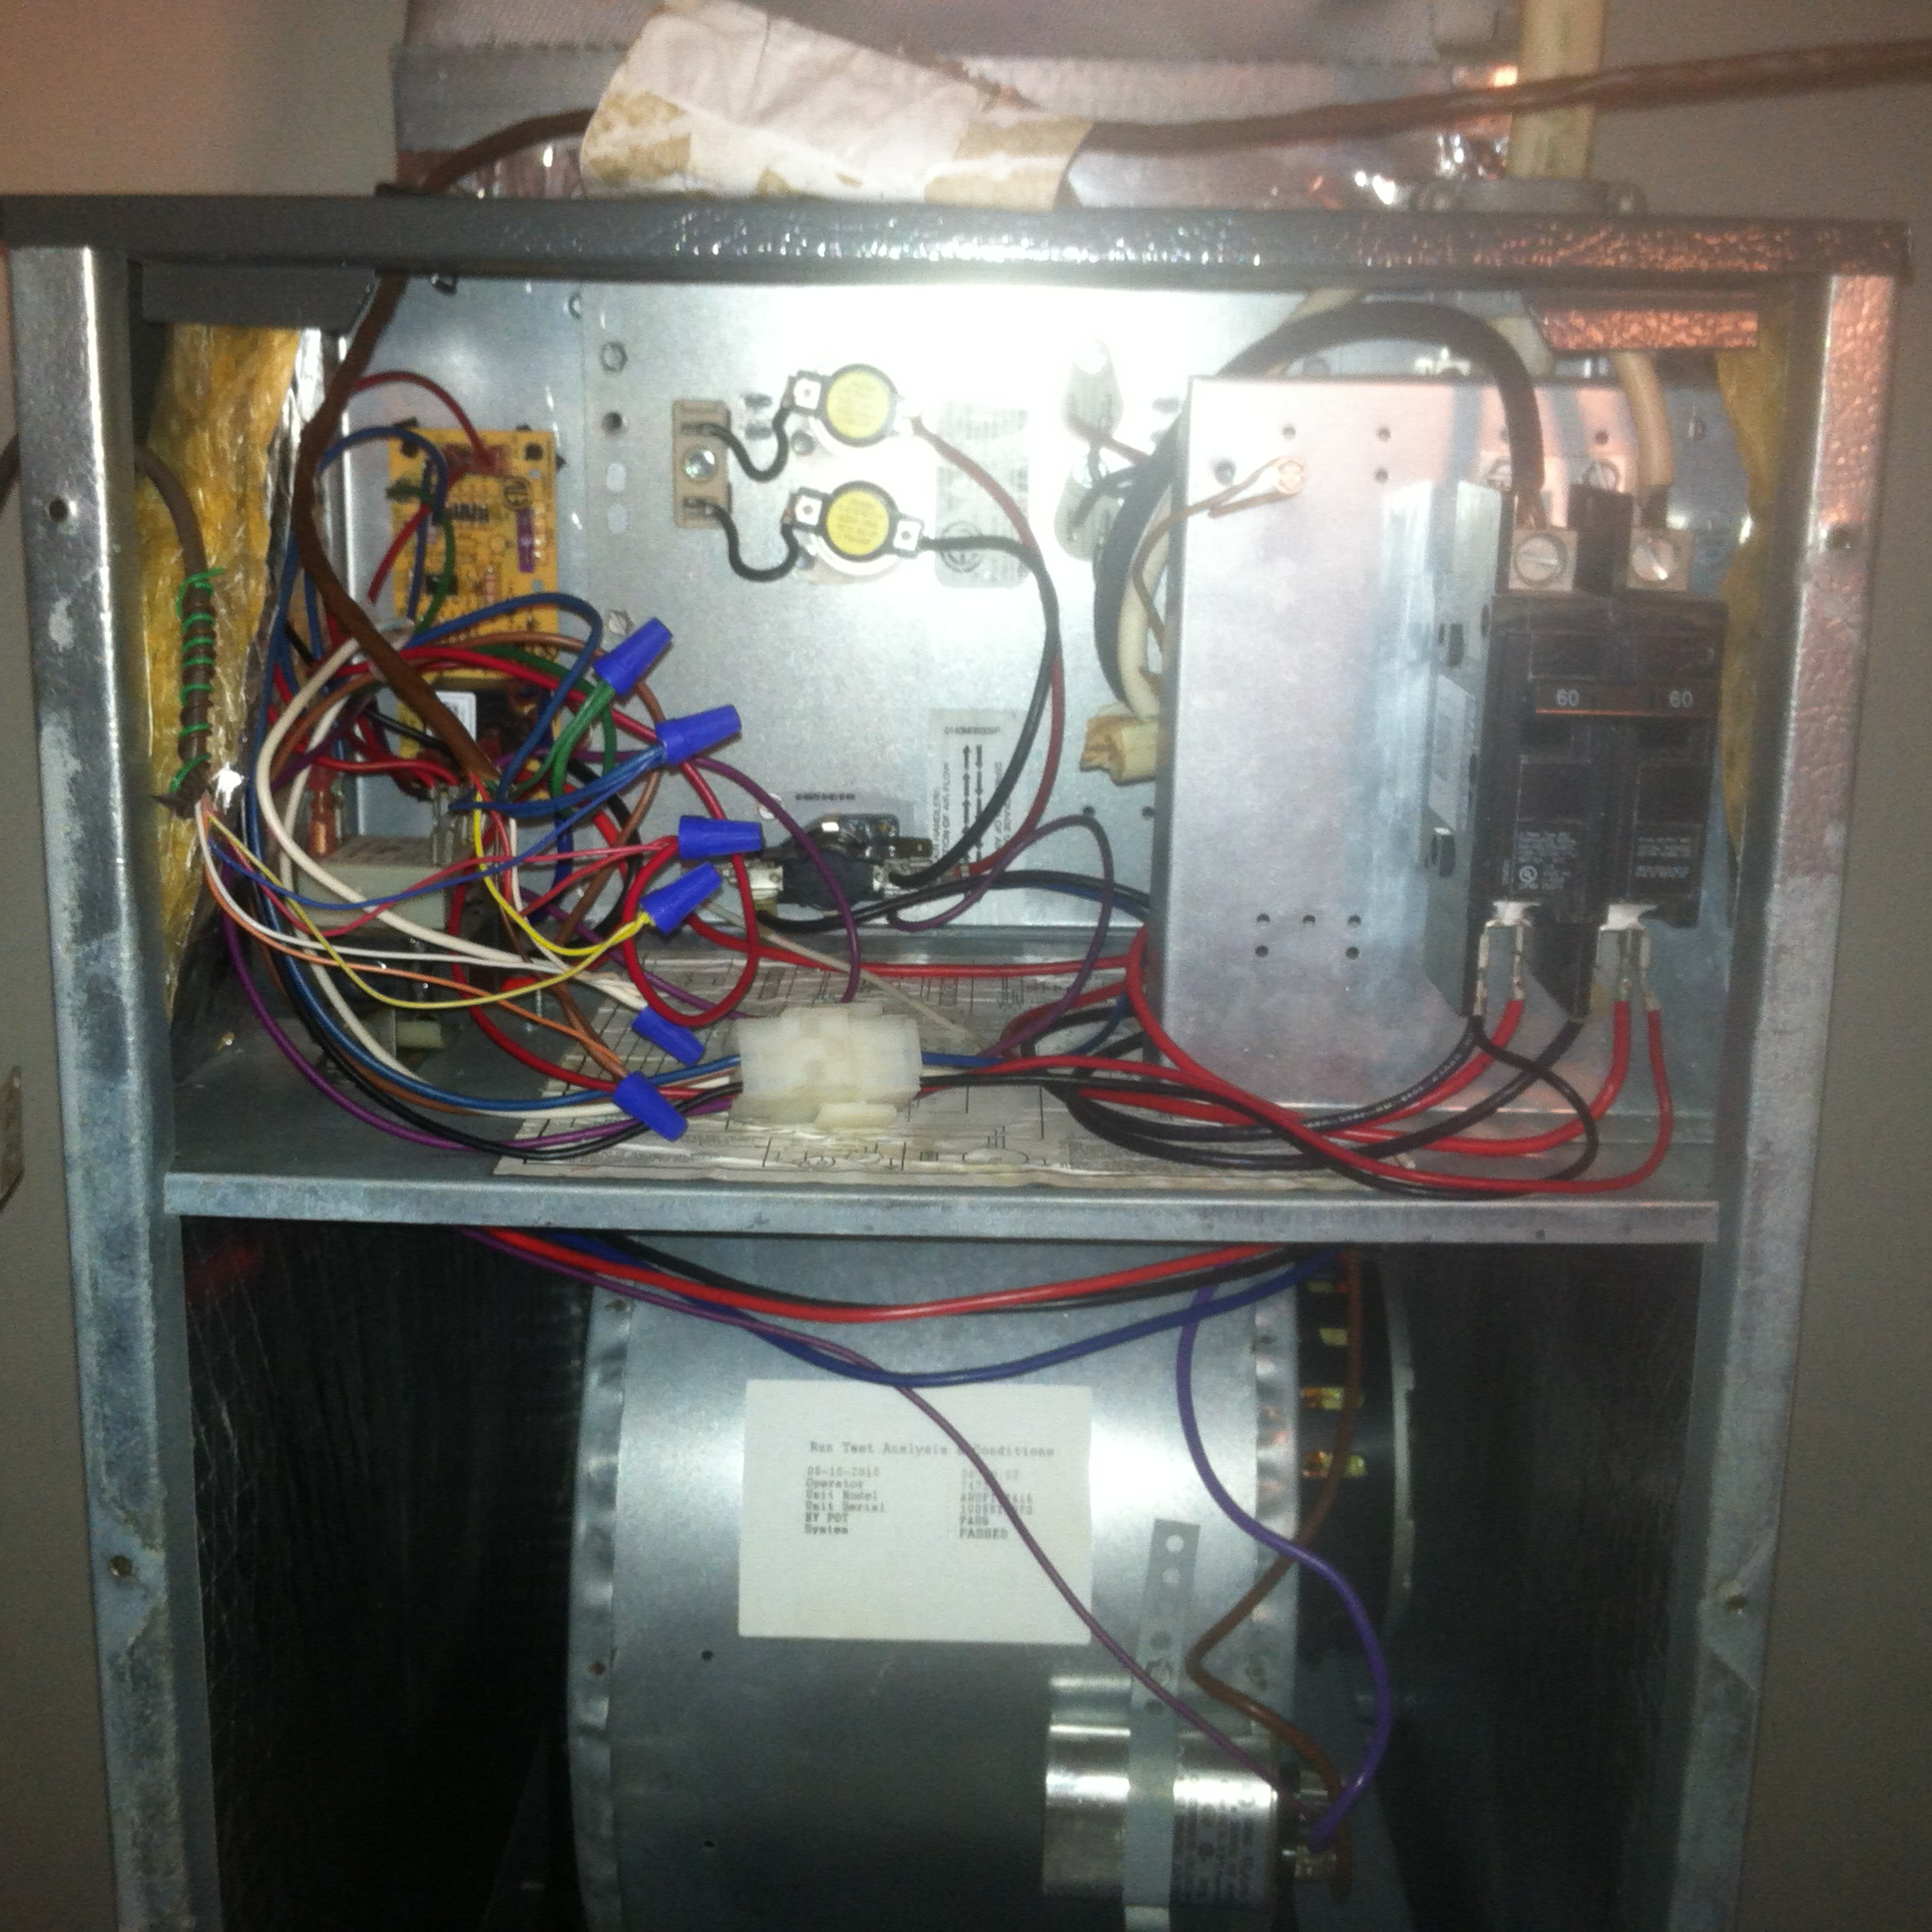 goodman air handler wiring diagram the wiring diagram hello im a new homeowner and new to electric heat pump ac acircmiddot goodman hvac fan wiring diagram